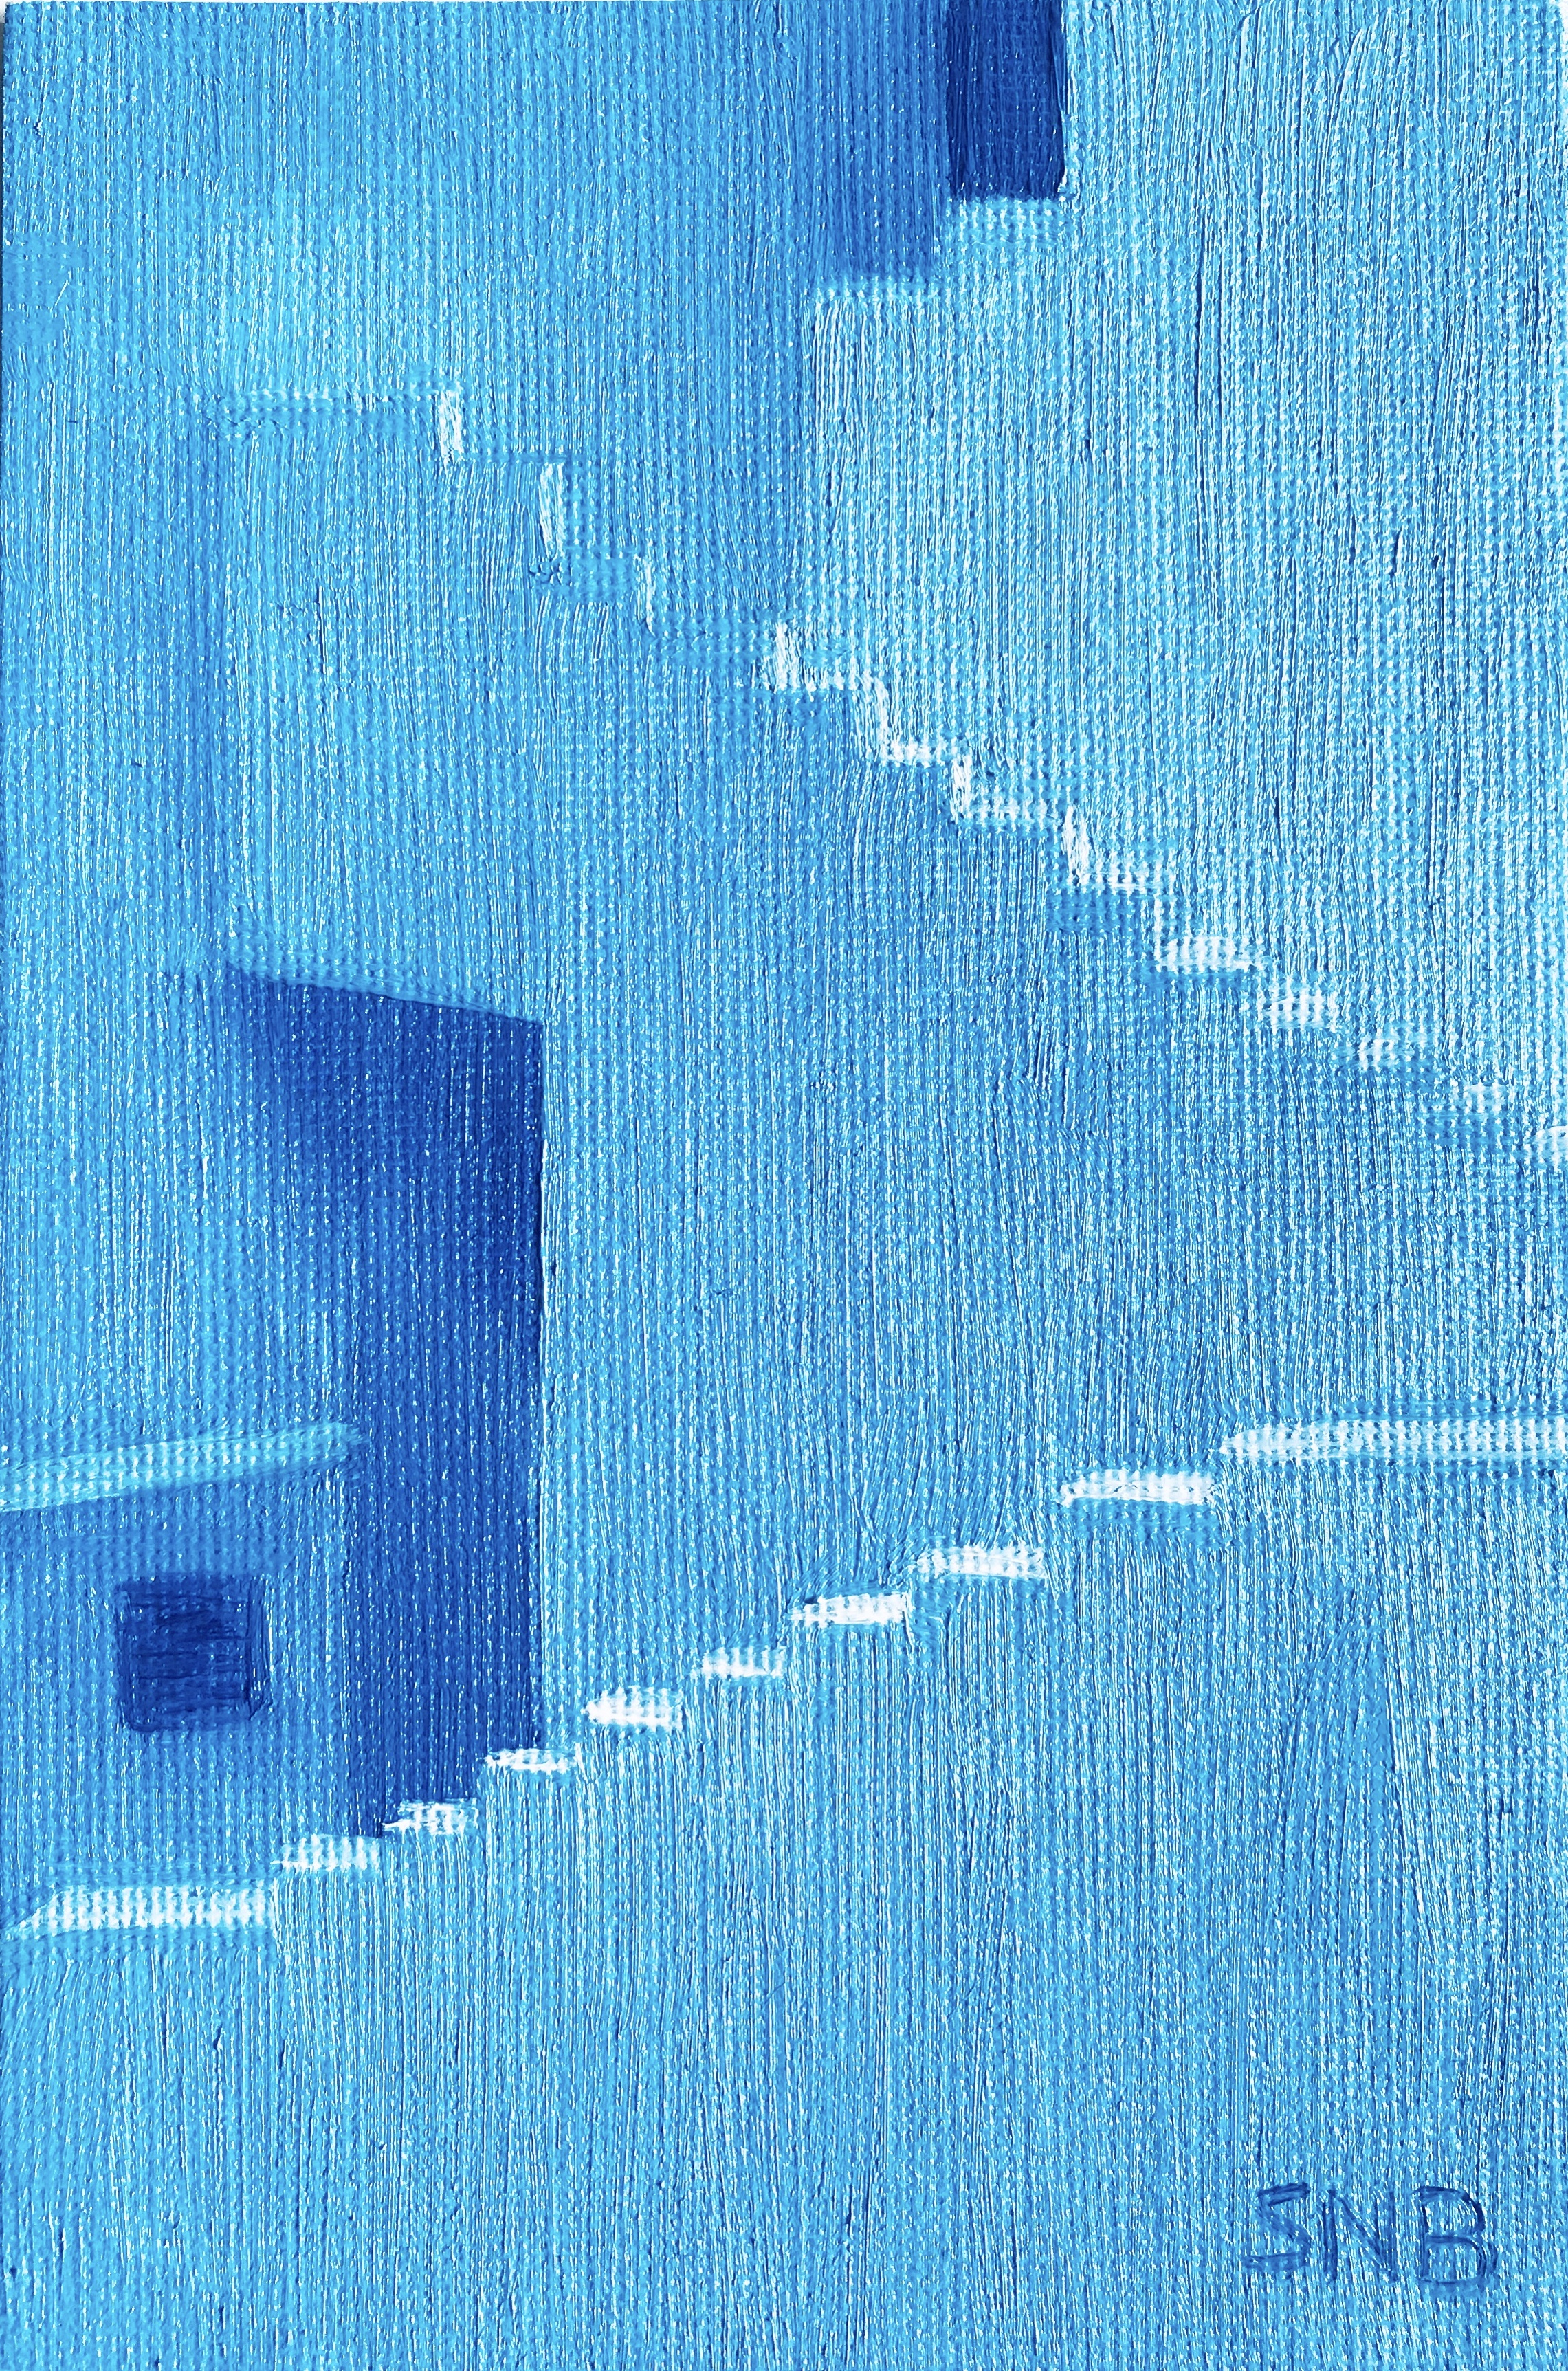 Somewhere in Spain; a 4 x 6 Oil Painting. The painting is of a building with multiple exterior stairs and doorways painted in shades of Cobolt Blue